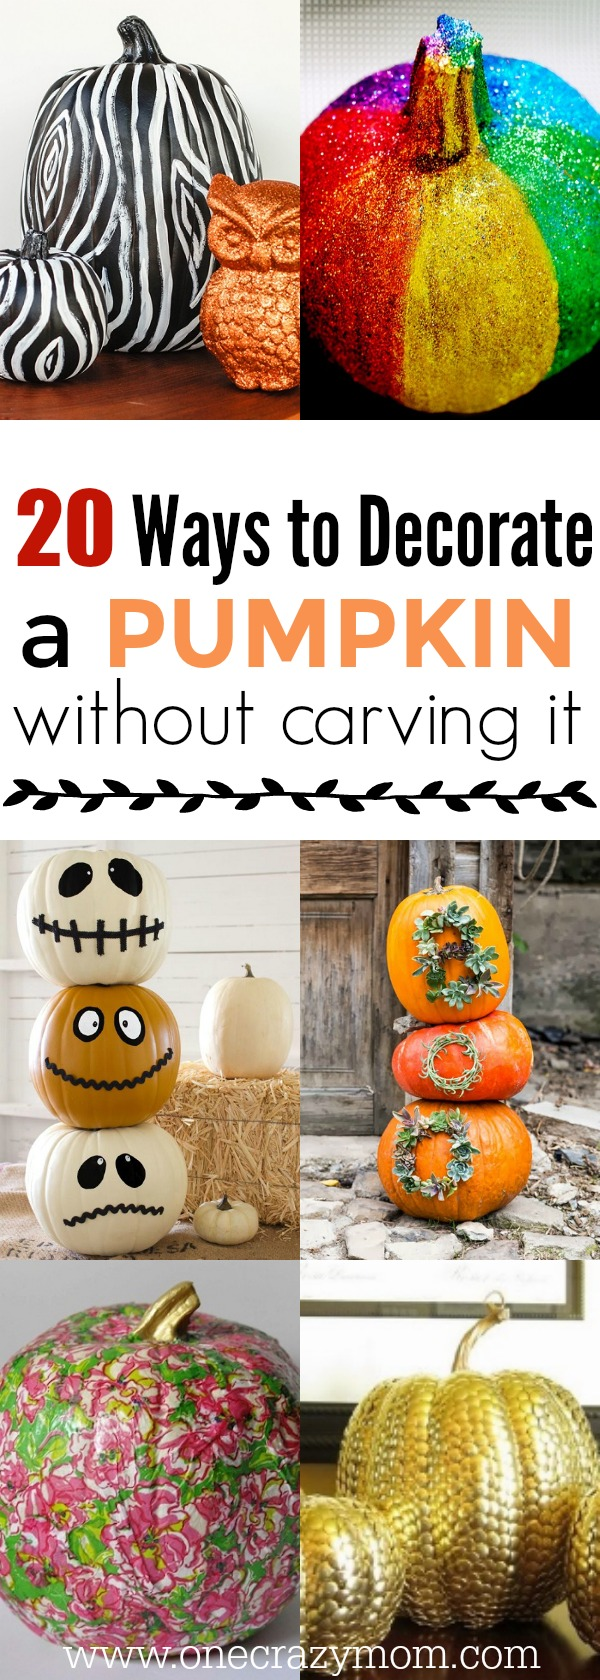 How to decorate a pumpkin without carving it easy ideas